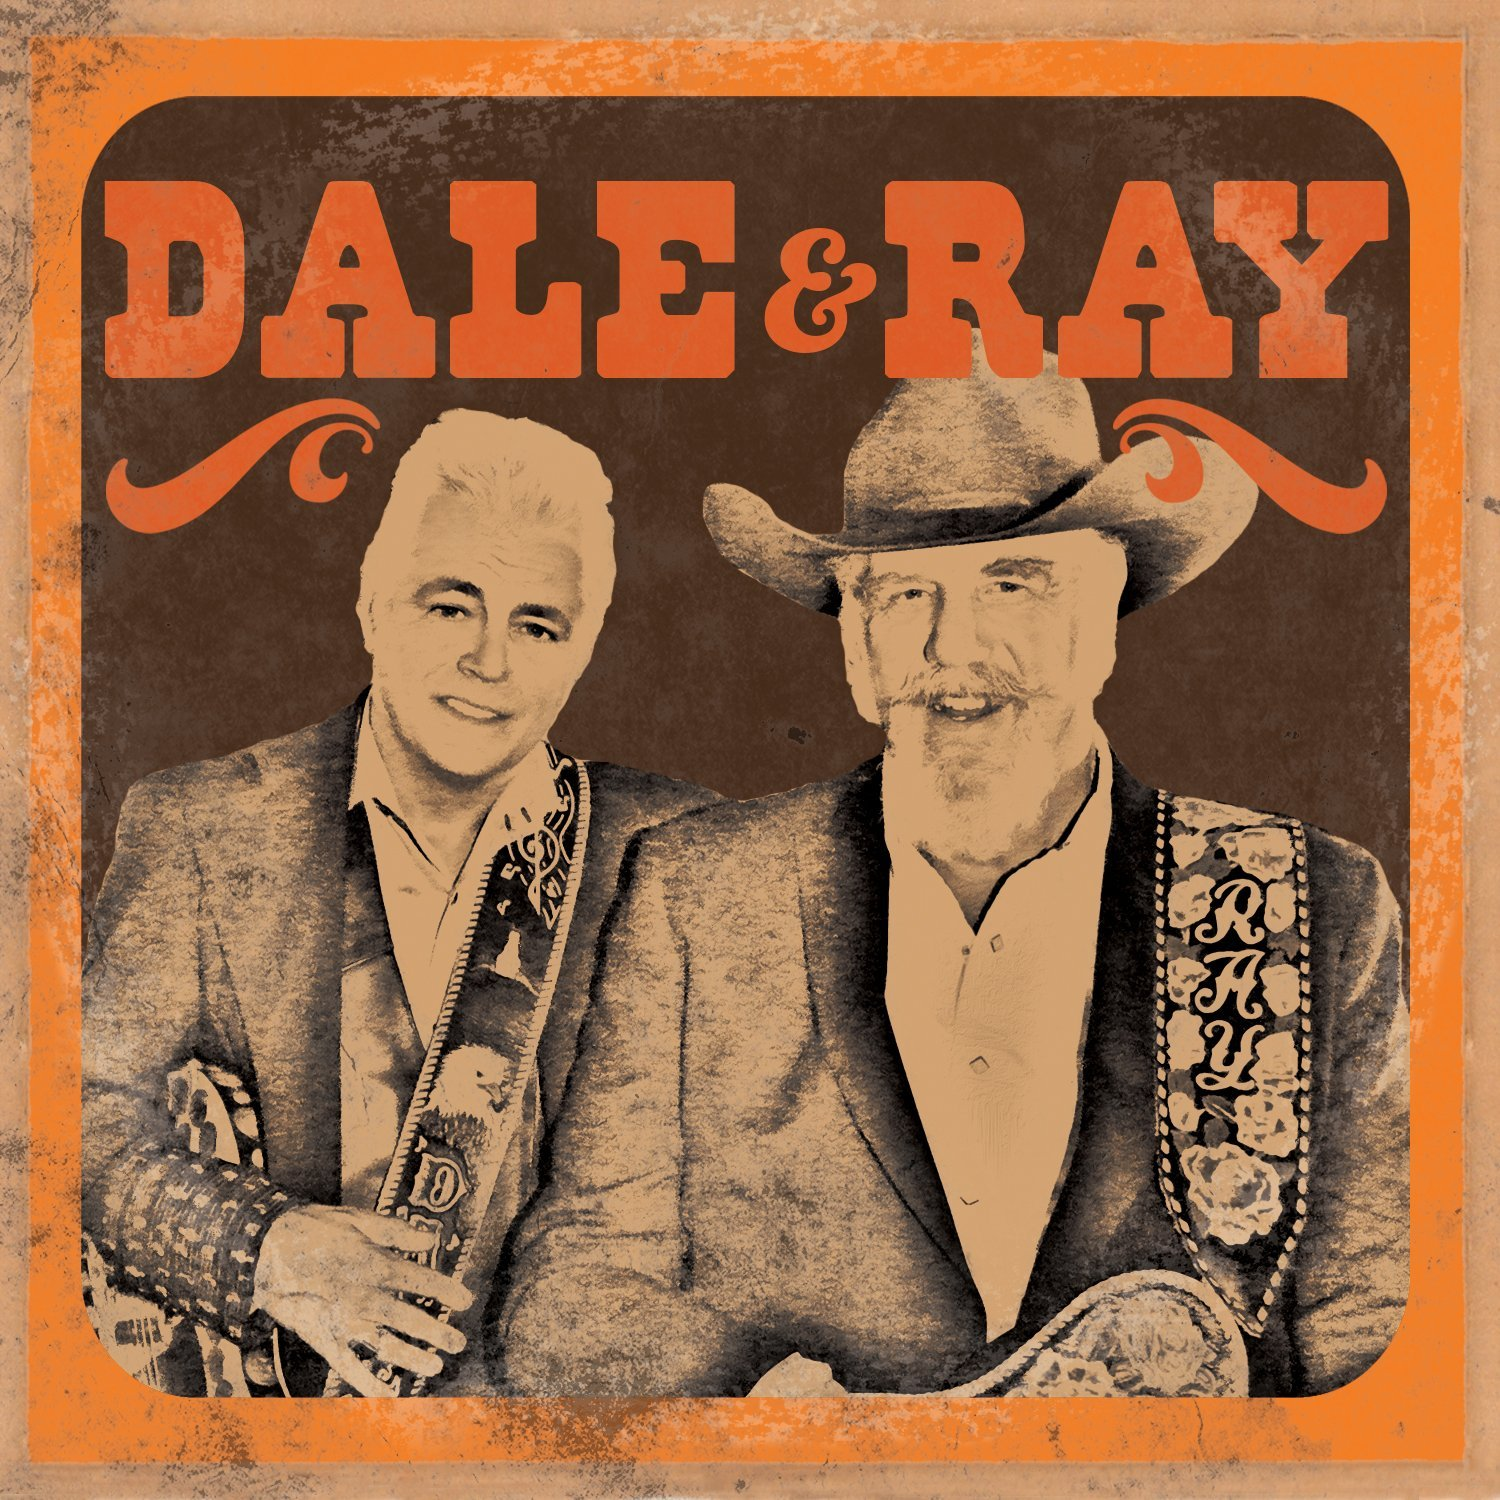 Dale & Ray, 'Write Your Own Songs'